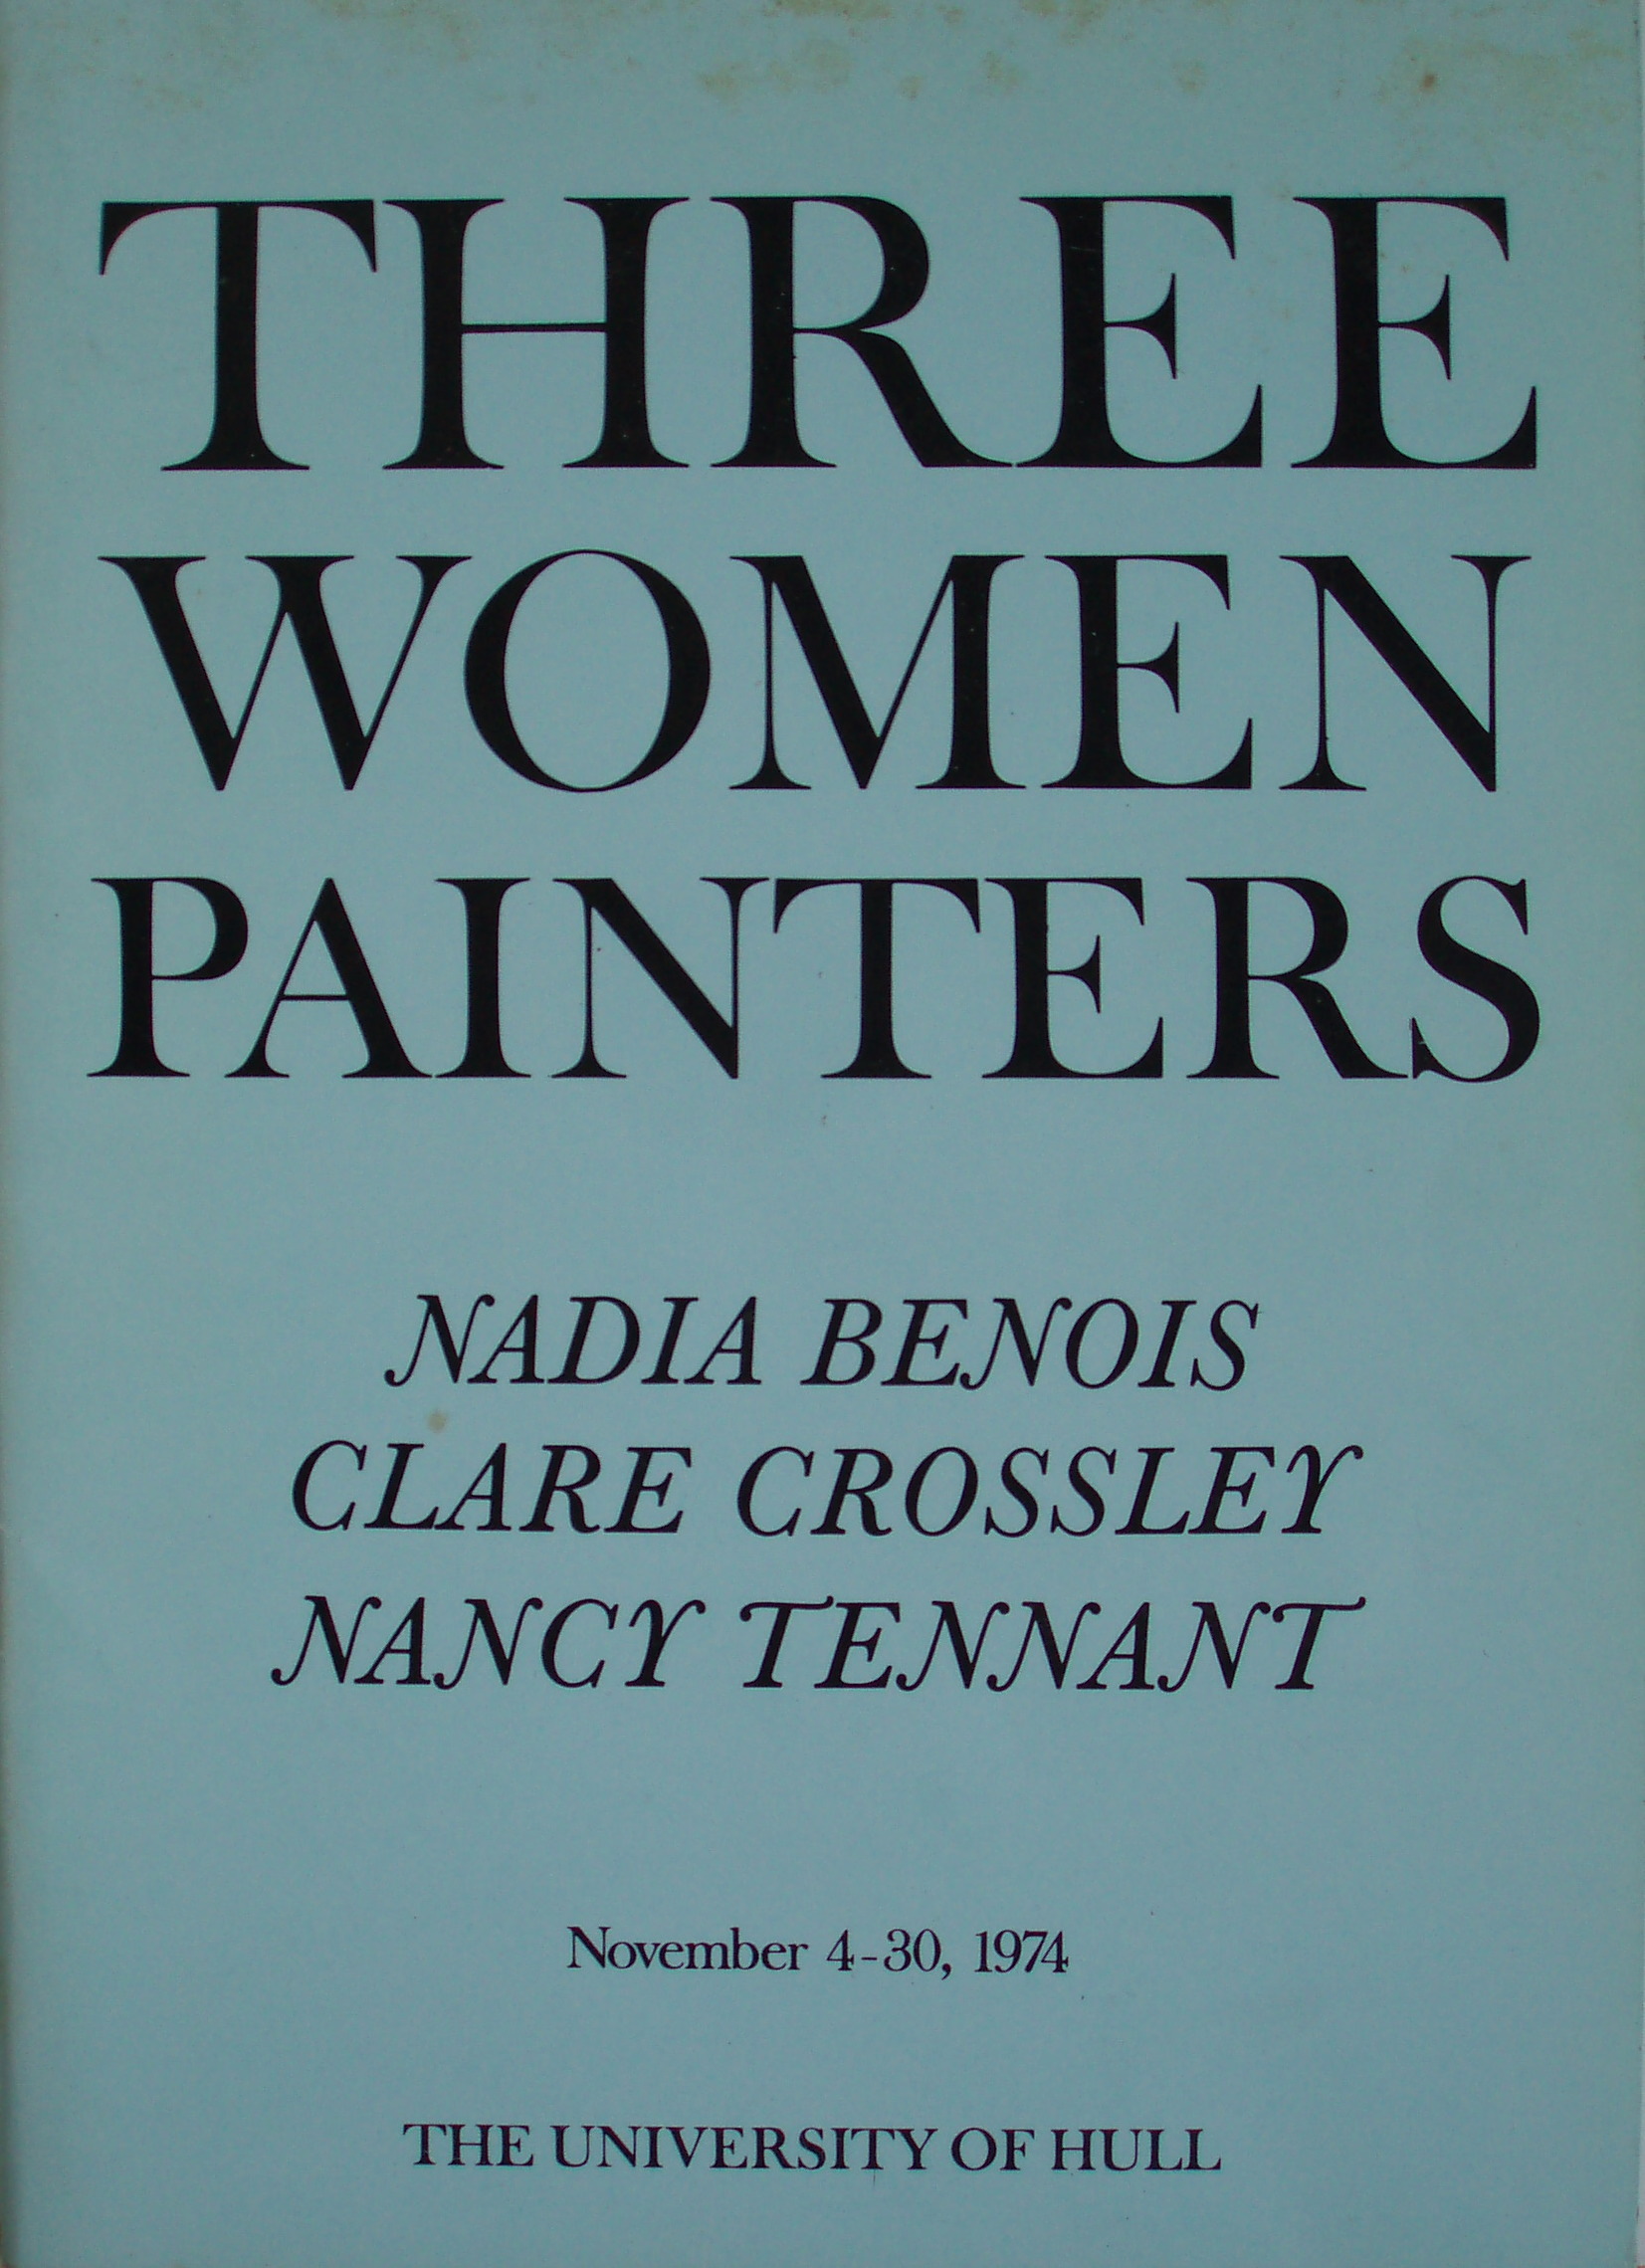 Three Women Painters